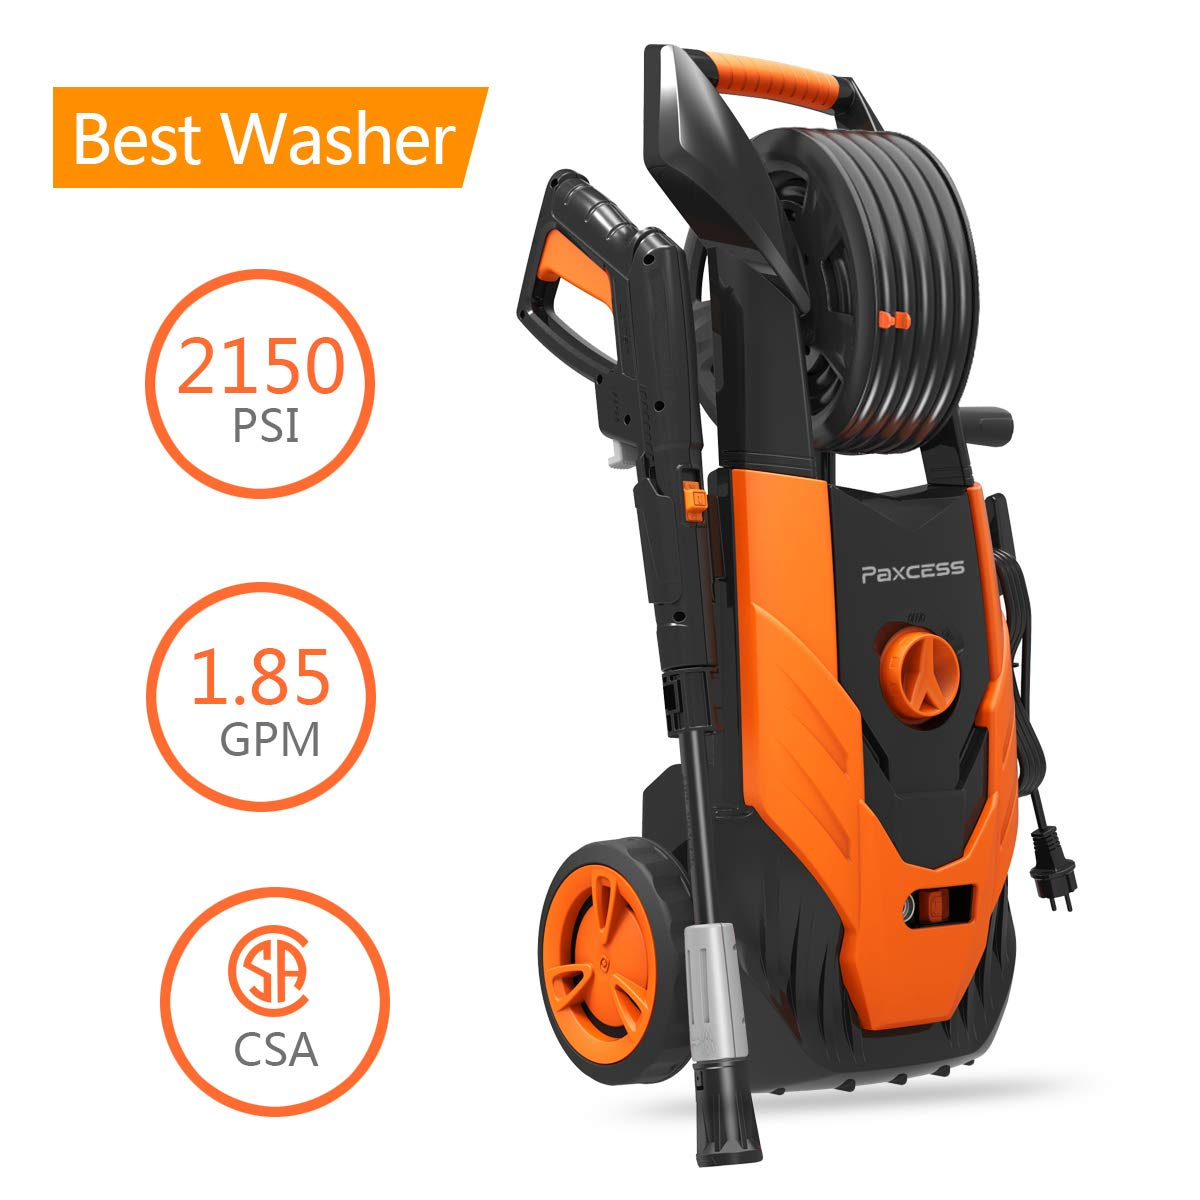 Paxcess Electric Power Washer Psi Gpm High Pressure Cleaner Machine For Car